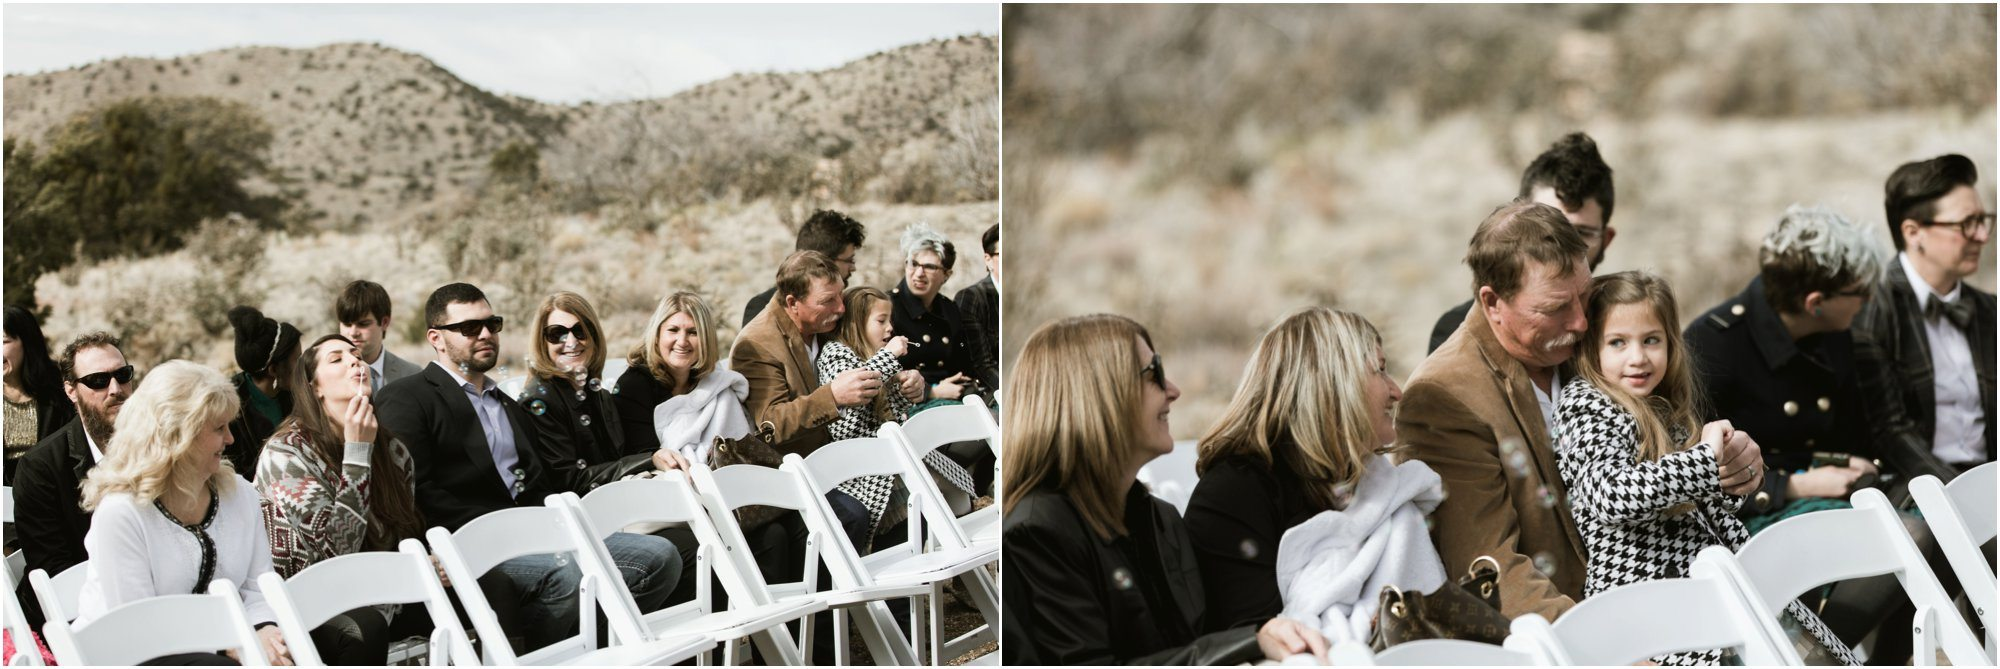 0054BlueRosePhotography_ Albuquerque Wedding Photographer_ Santa Fe Wedding Photographer